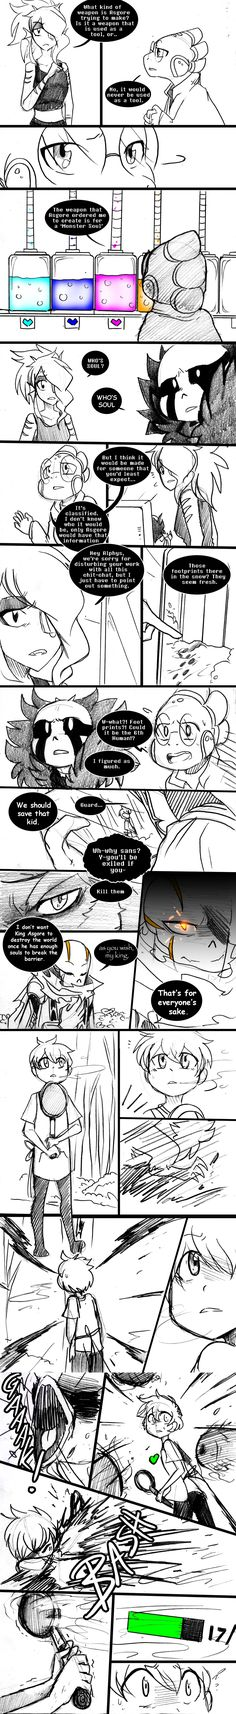 Anamnesis Part 4 - 21-25 by GolzyBlazey on DeviantArt